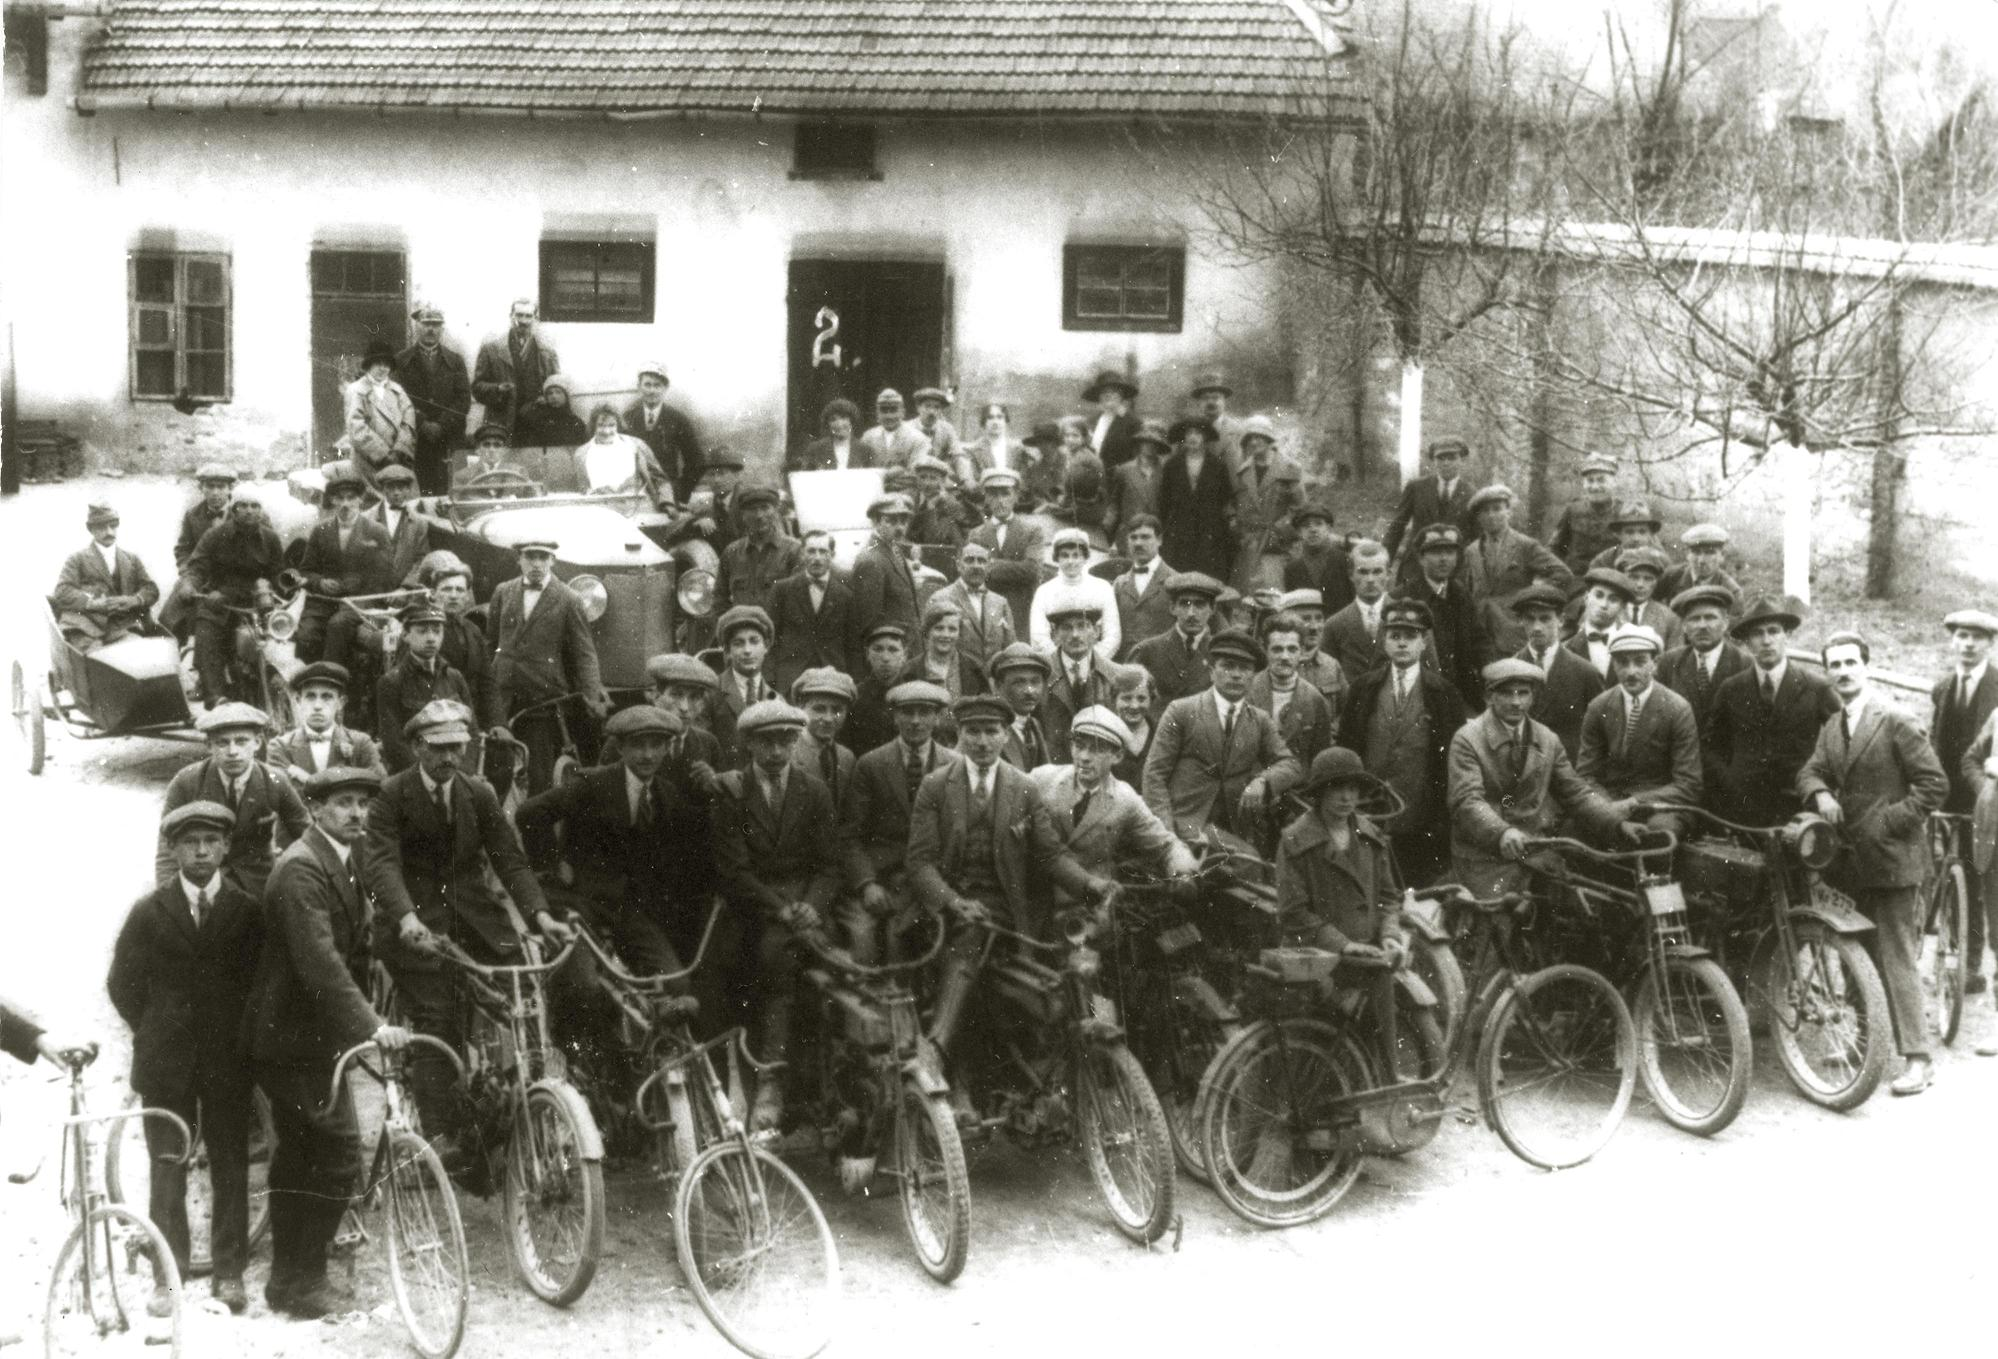 photo. Cyclists and Motorcyclists Club in Wieliczka, 1924. (from the collection of Cracow Saltworks Museum Wieliczka)